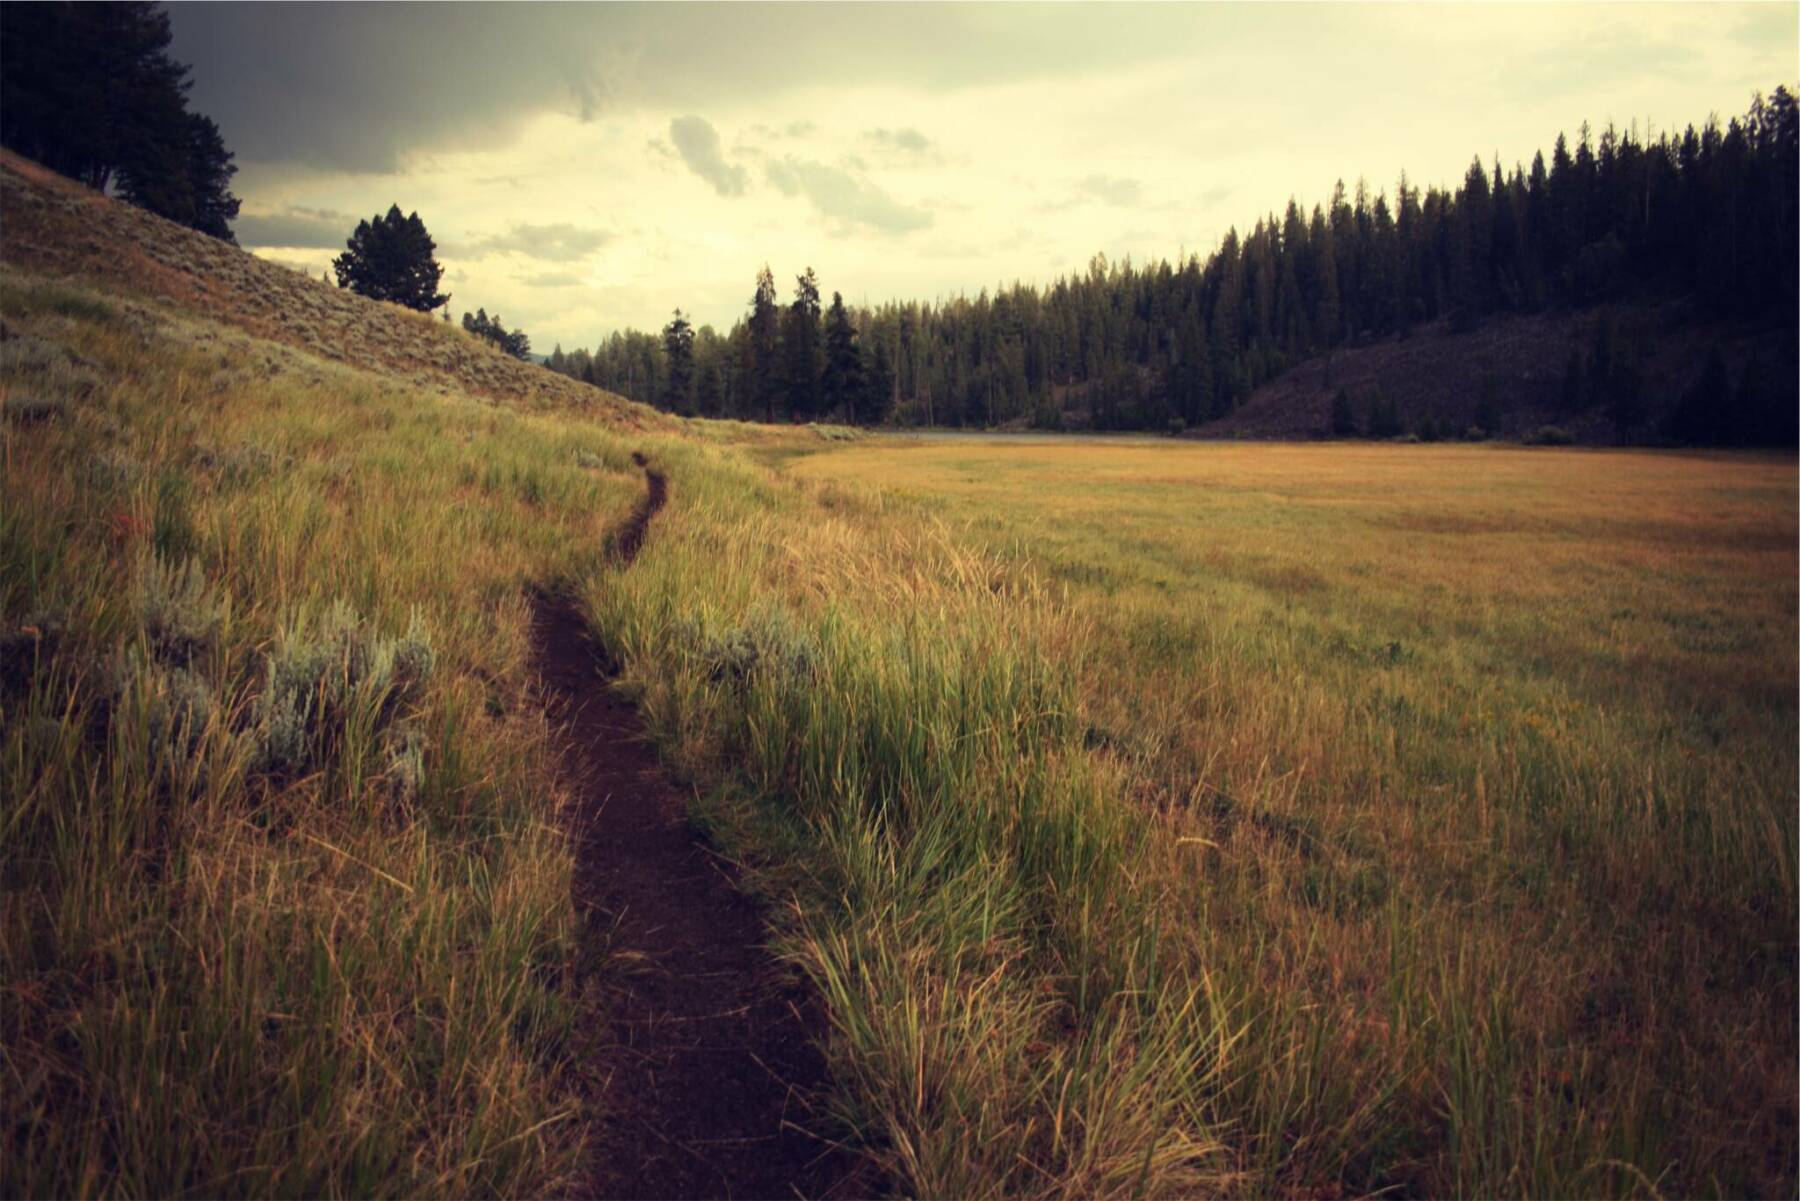 Grassy mountain single track trail